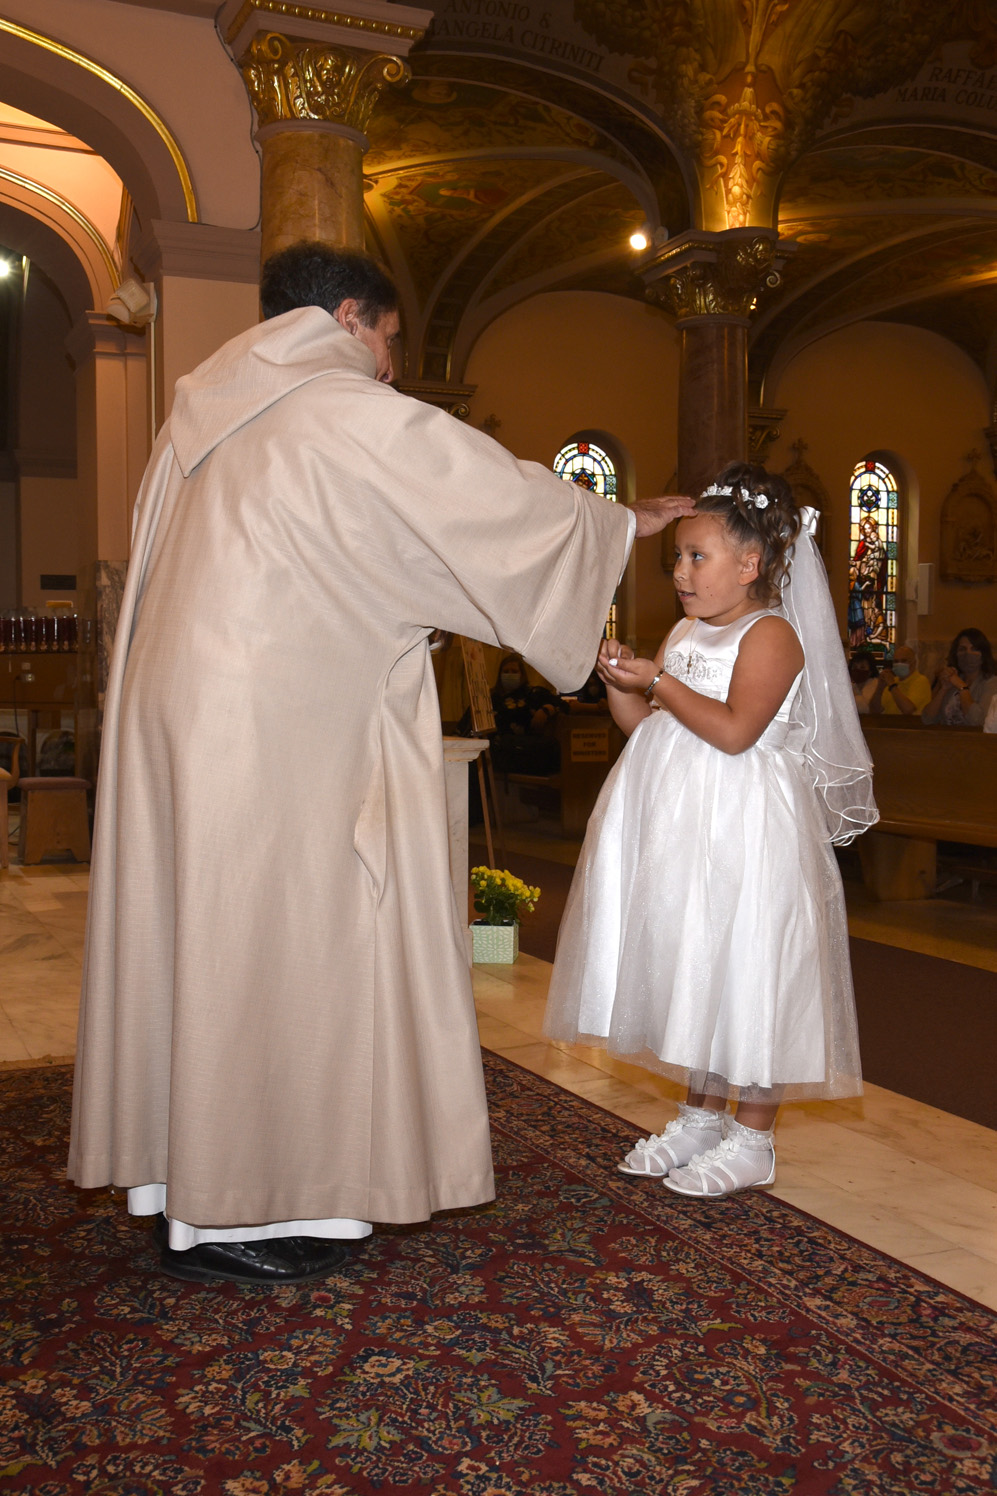 FIRST-COMMUNION-MAY-15-2021-10011003